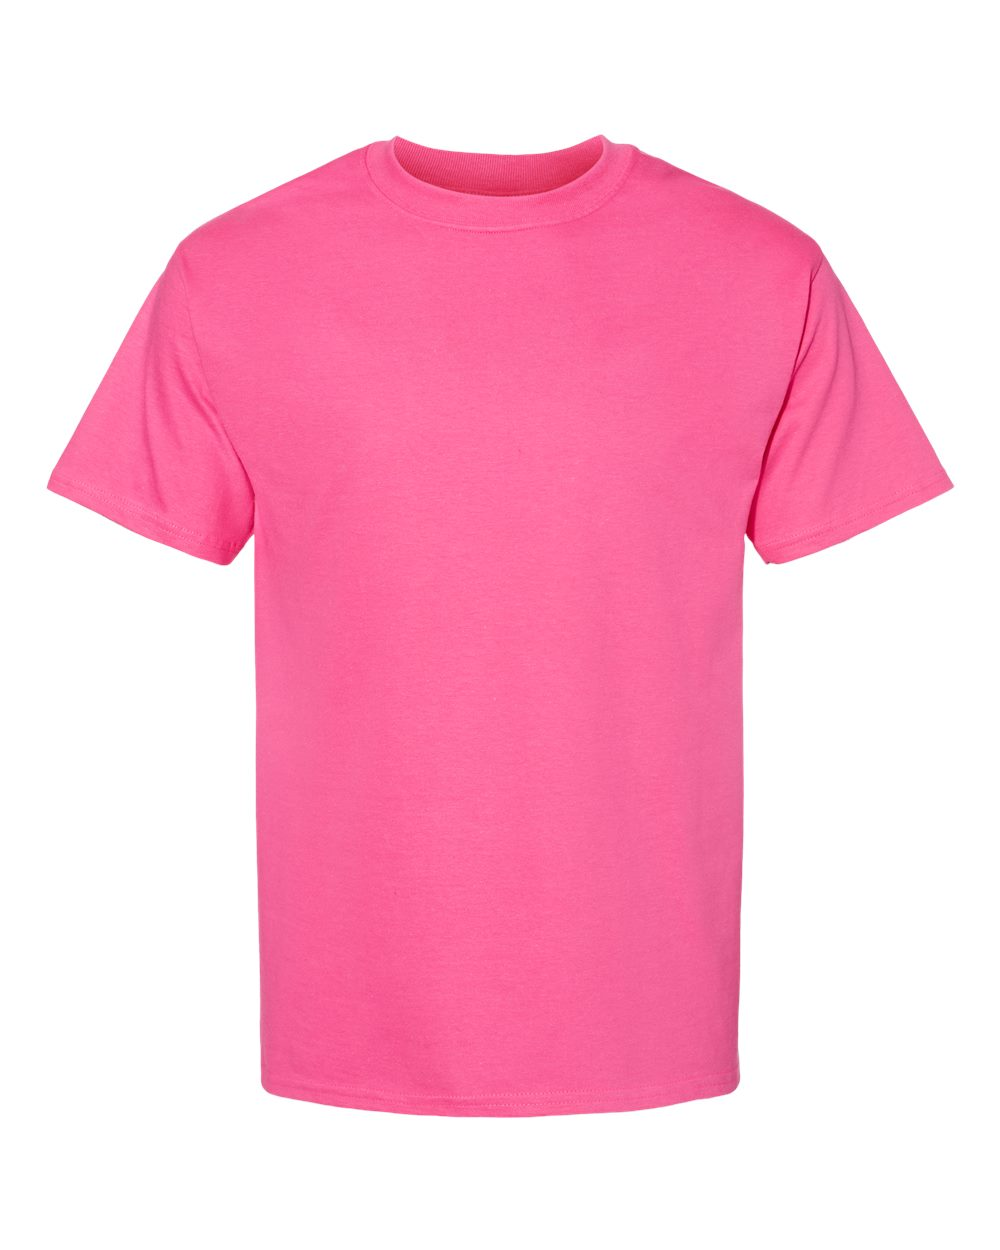 click to view Wow Pink